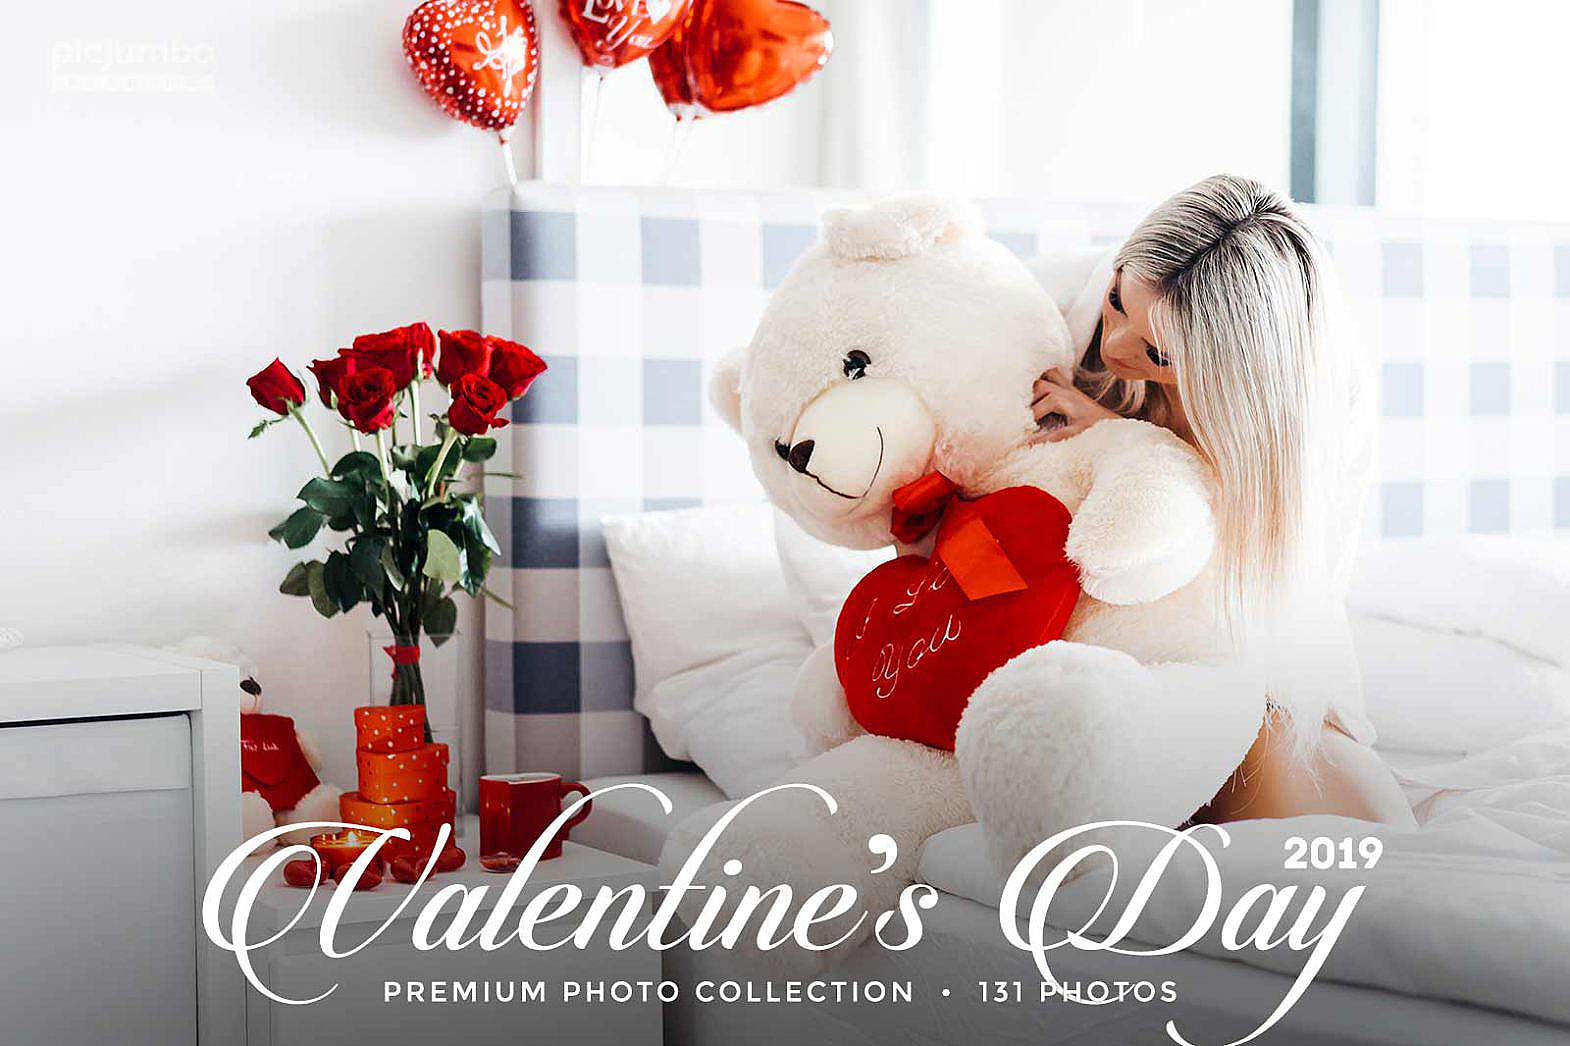 Valentines Day 2019 Stock Photos Collection by picjumbo